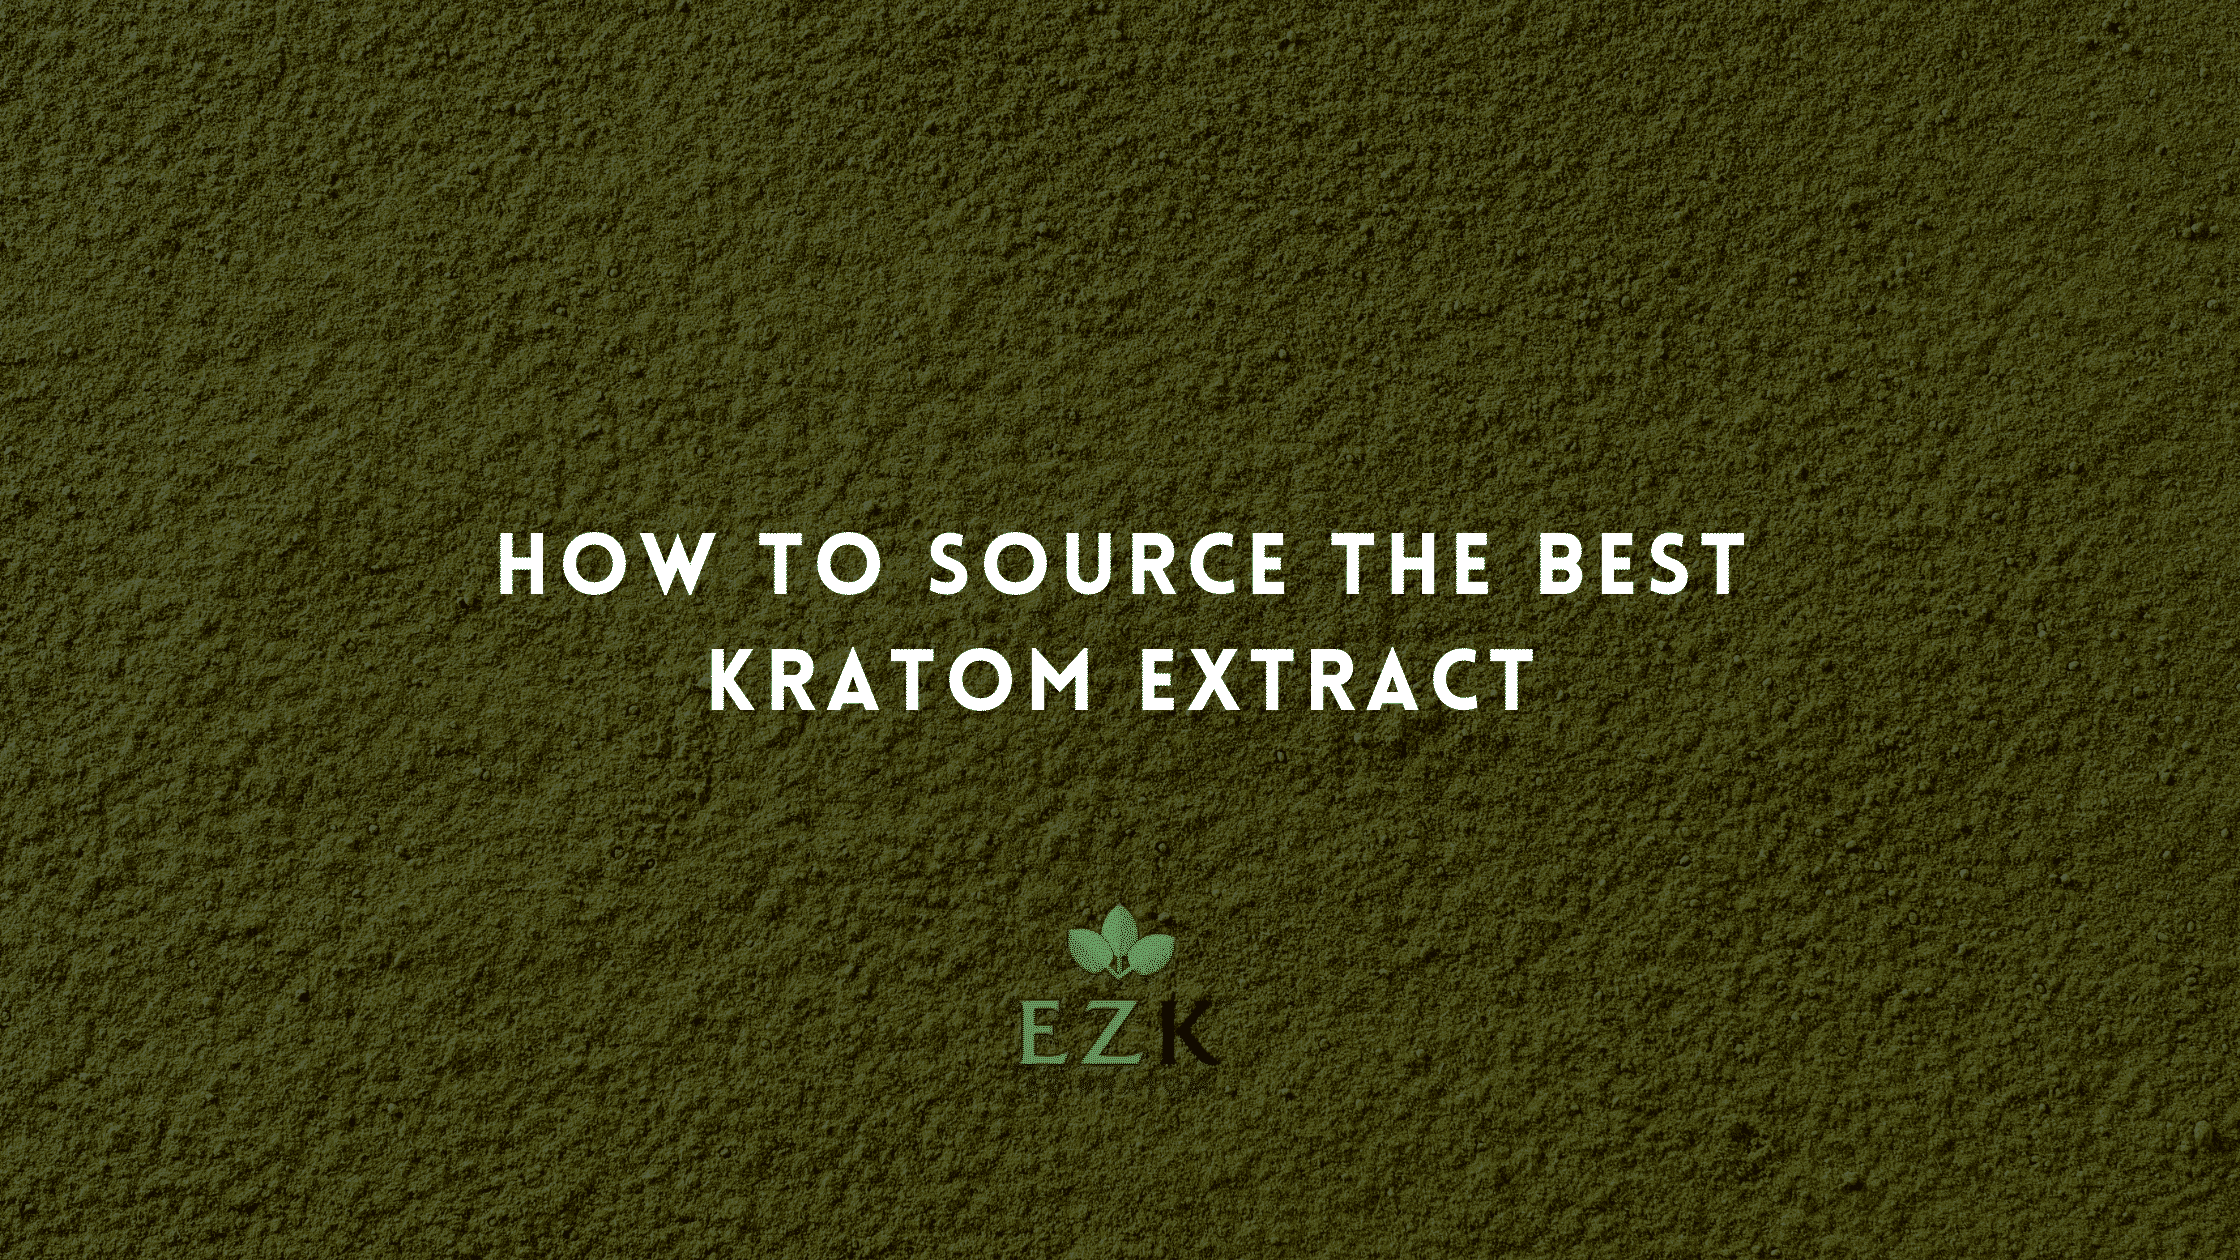 How to Source the Best Kratom Extract